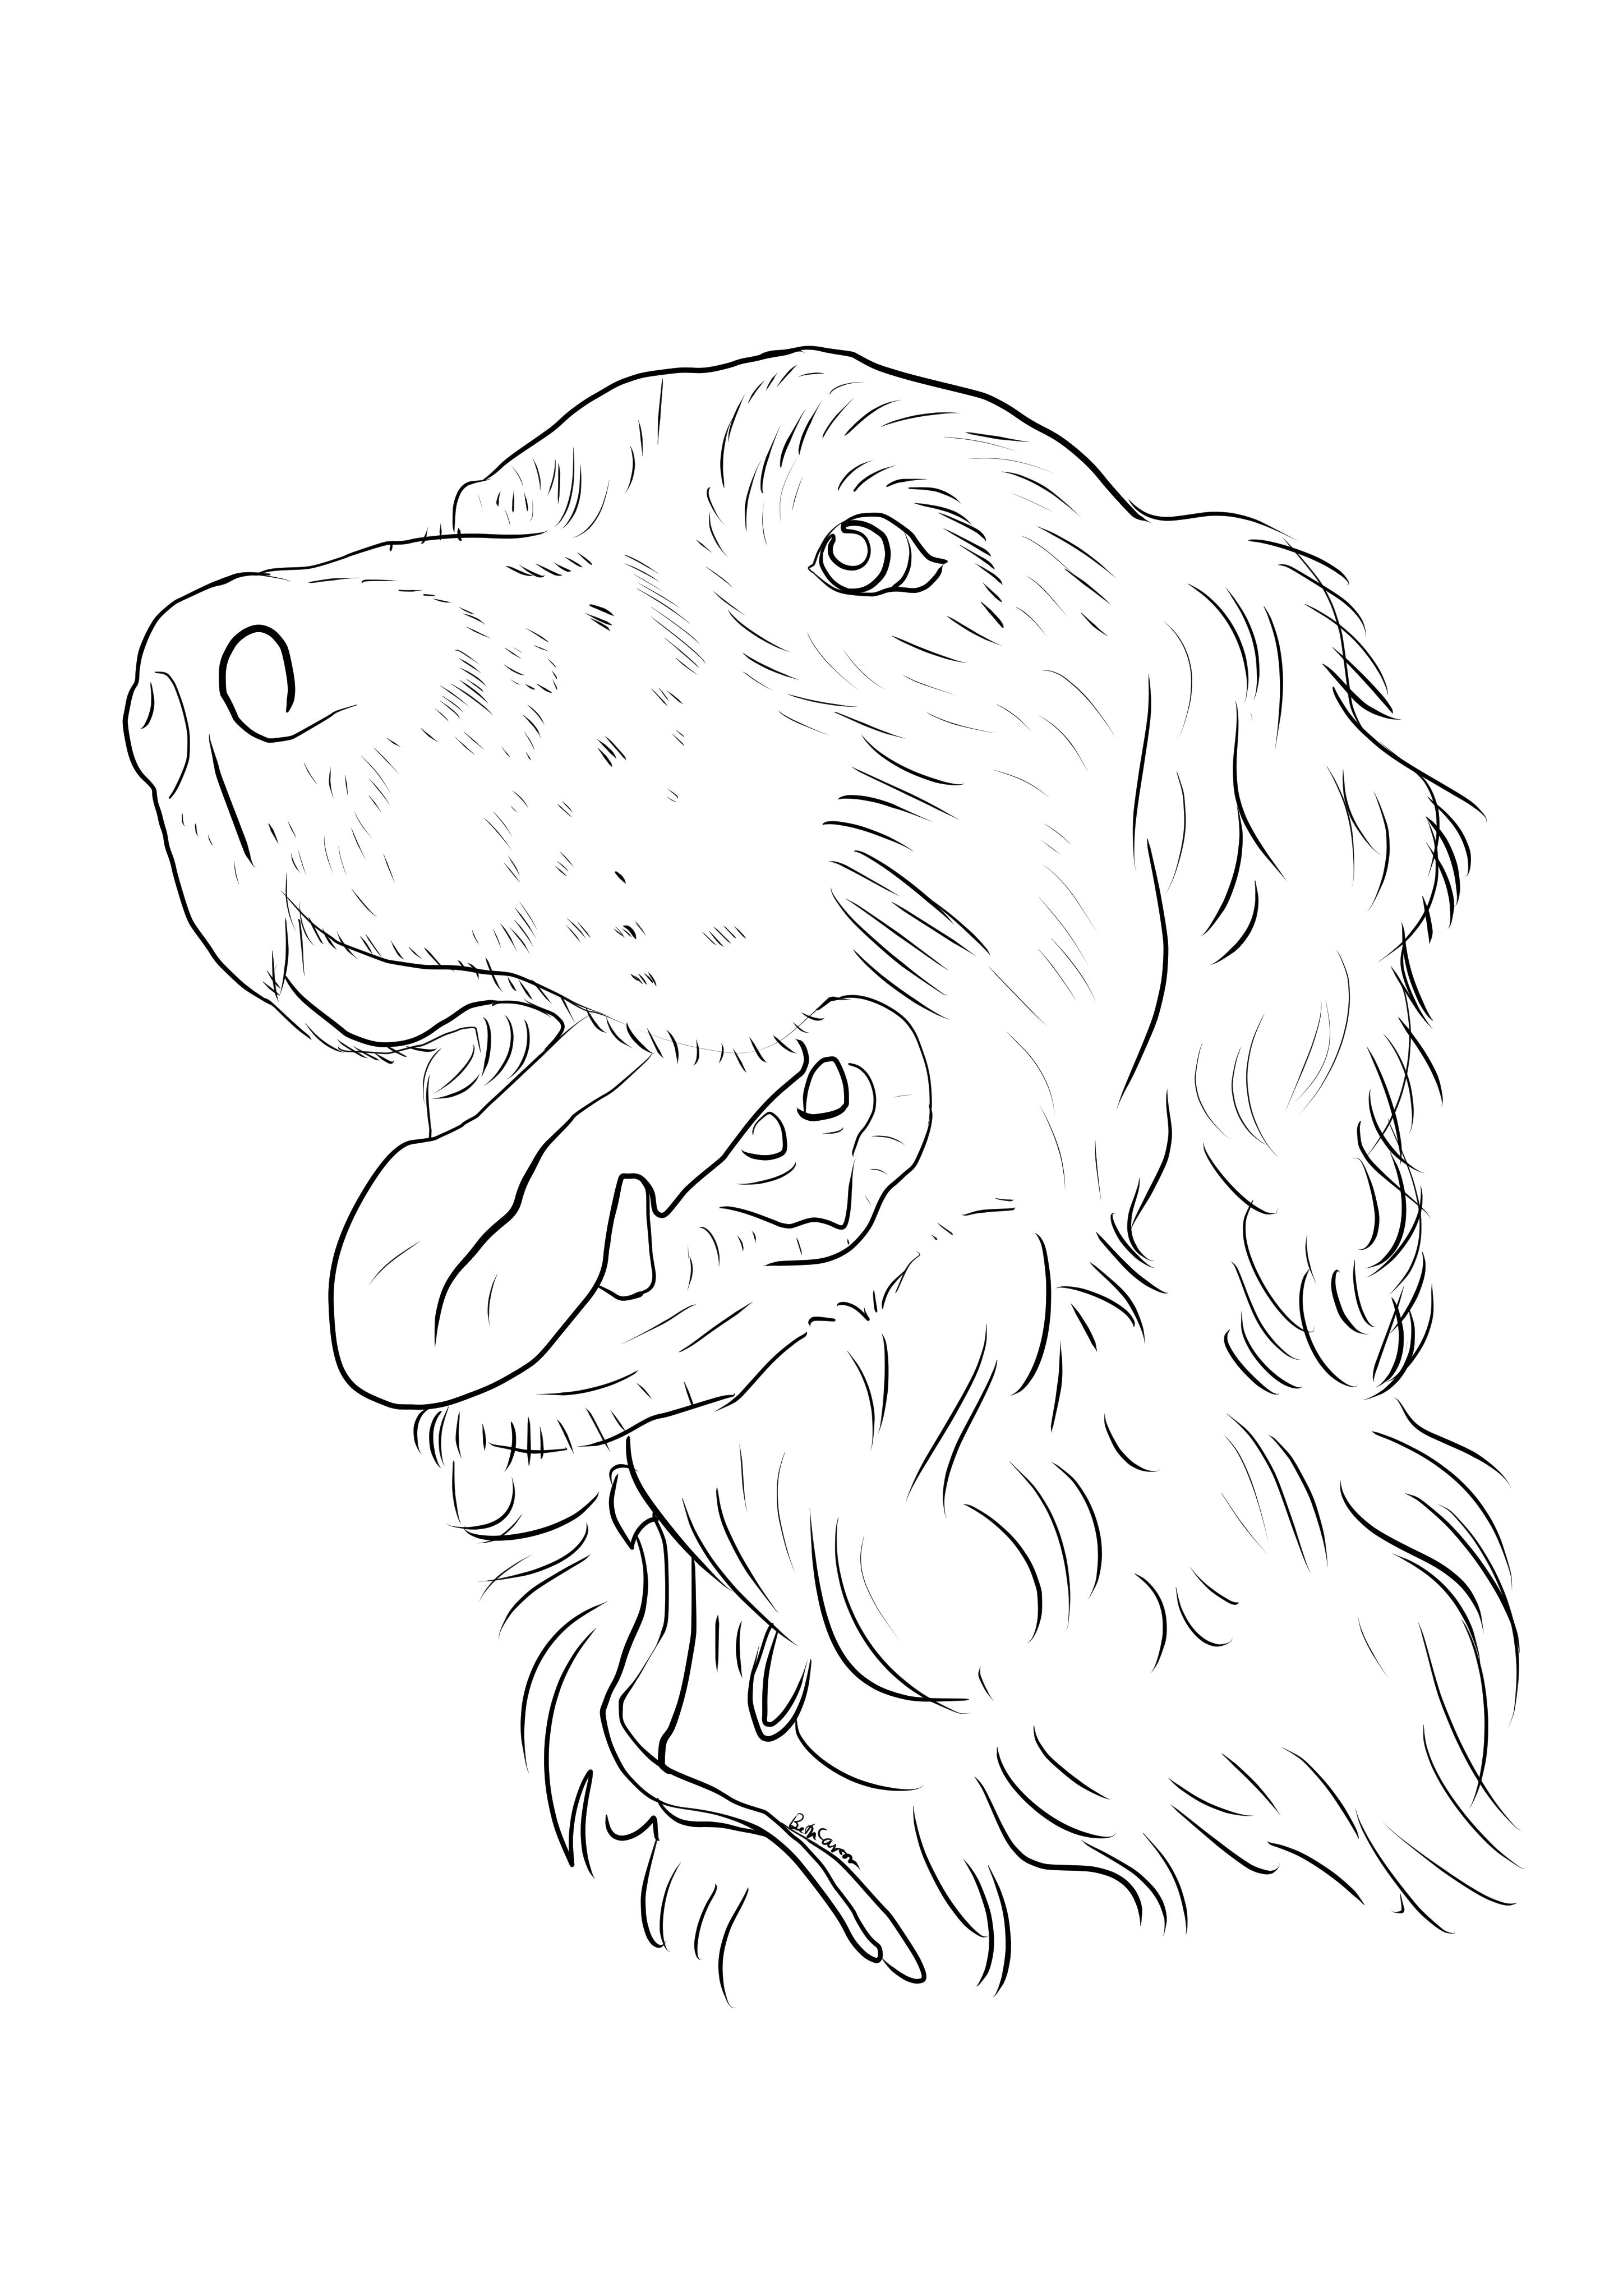 childrens coloring pages springer spaniel | Springer Spaniel coloring page! Beth Carson 2014 ...